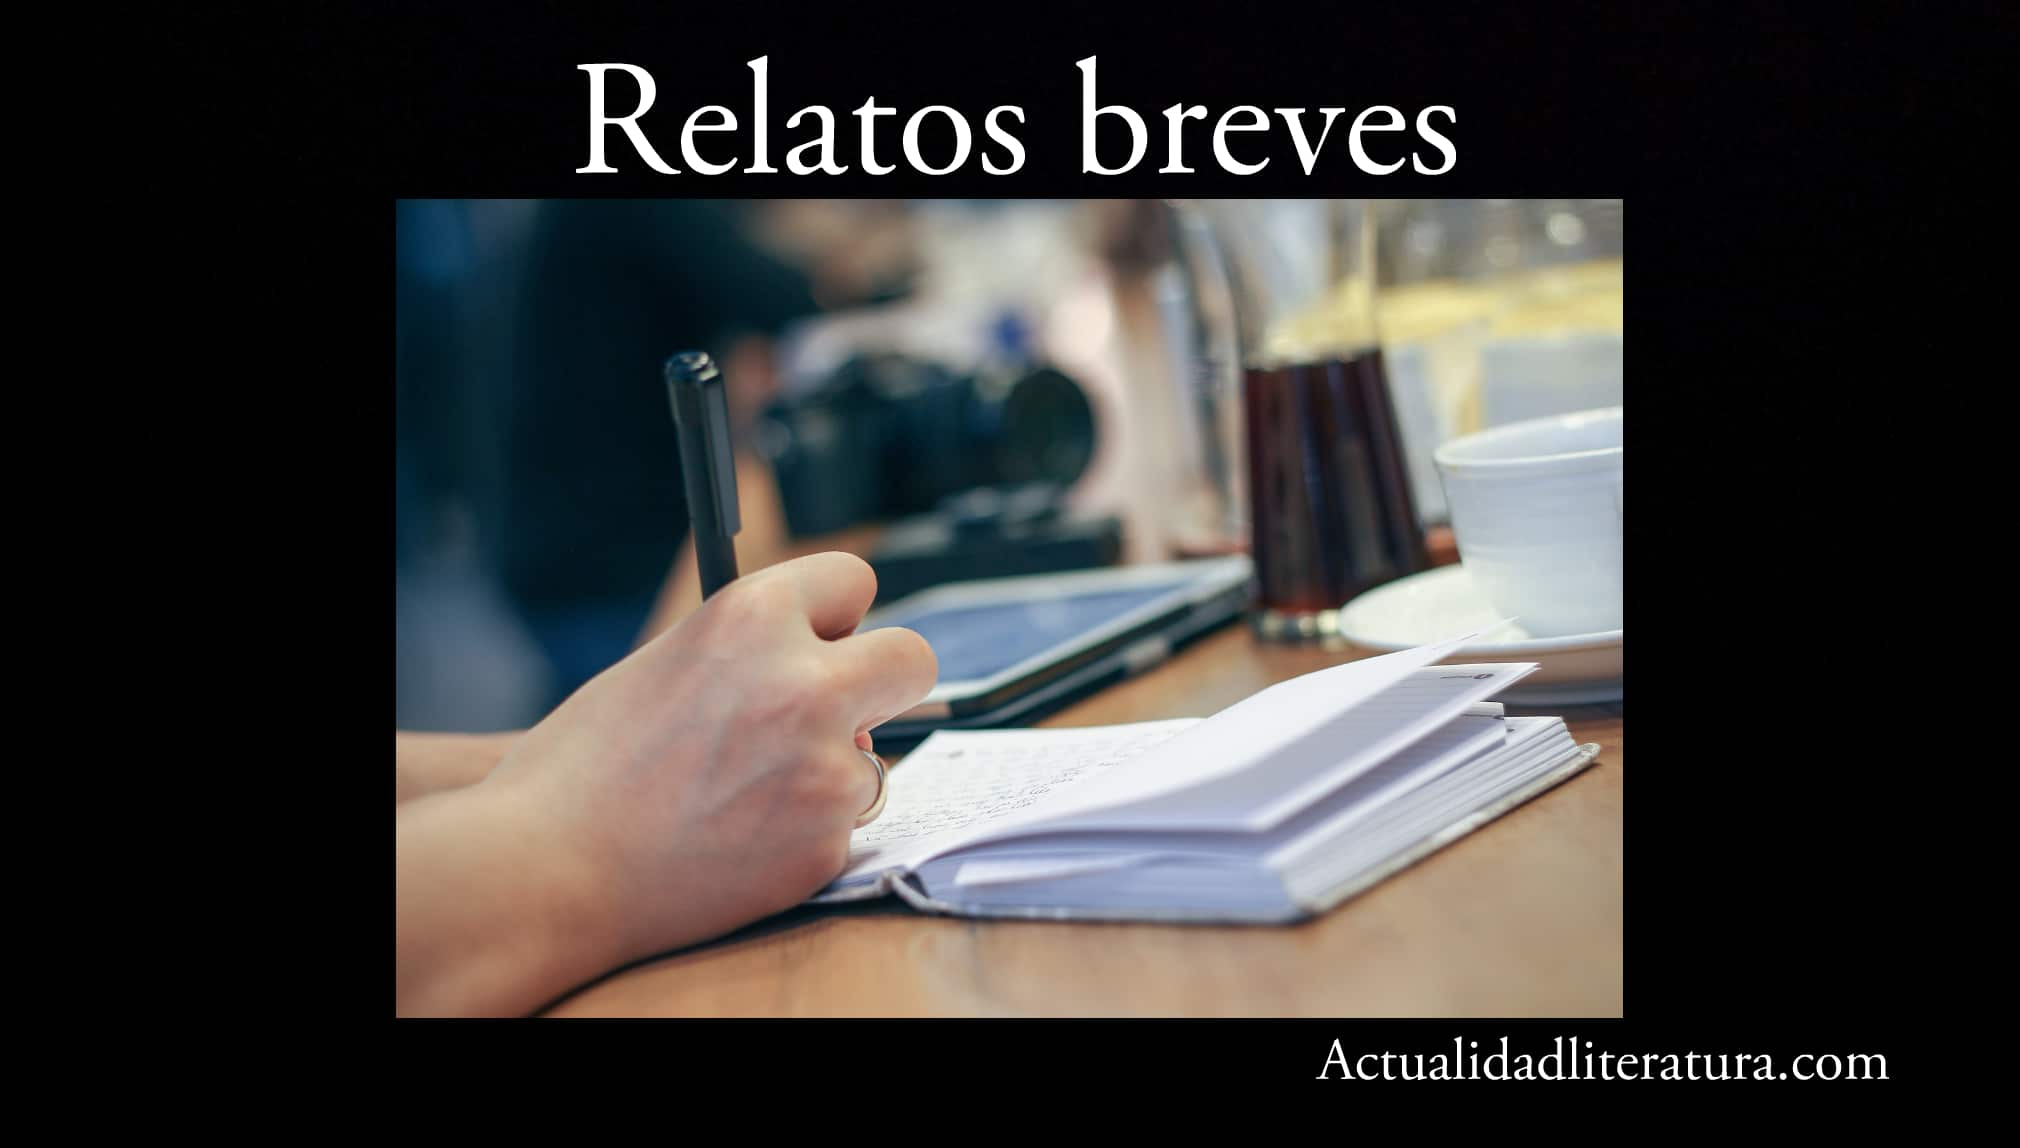 Relatos breves.